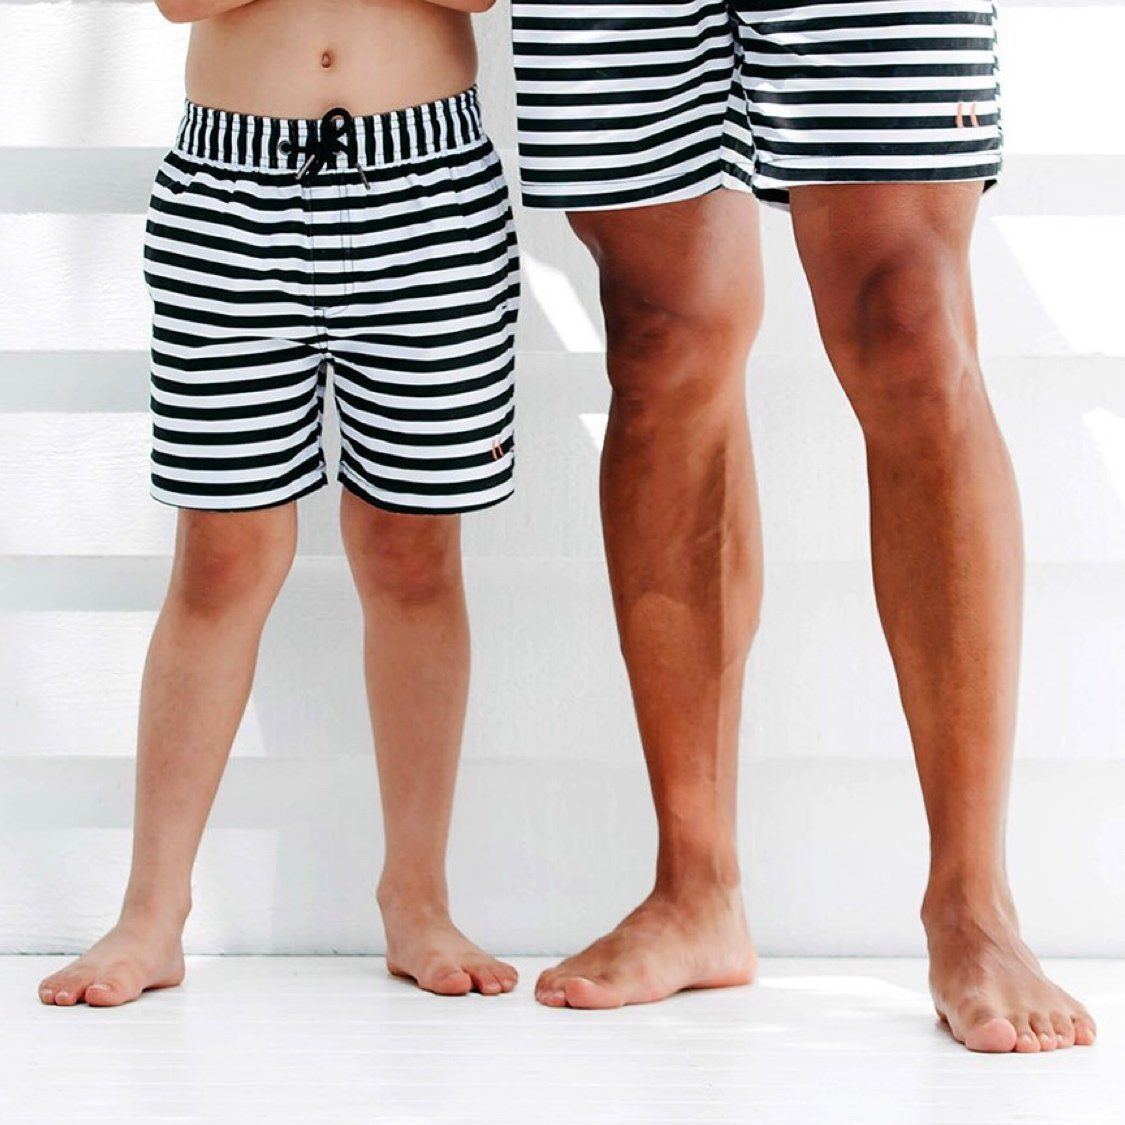 Beau Hudson - Mens and Boys Black and White Stripe Swim Shorts Swimwear Beau Hudson